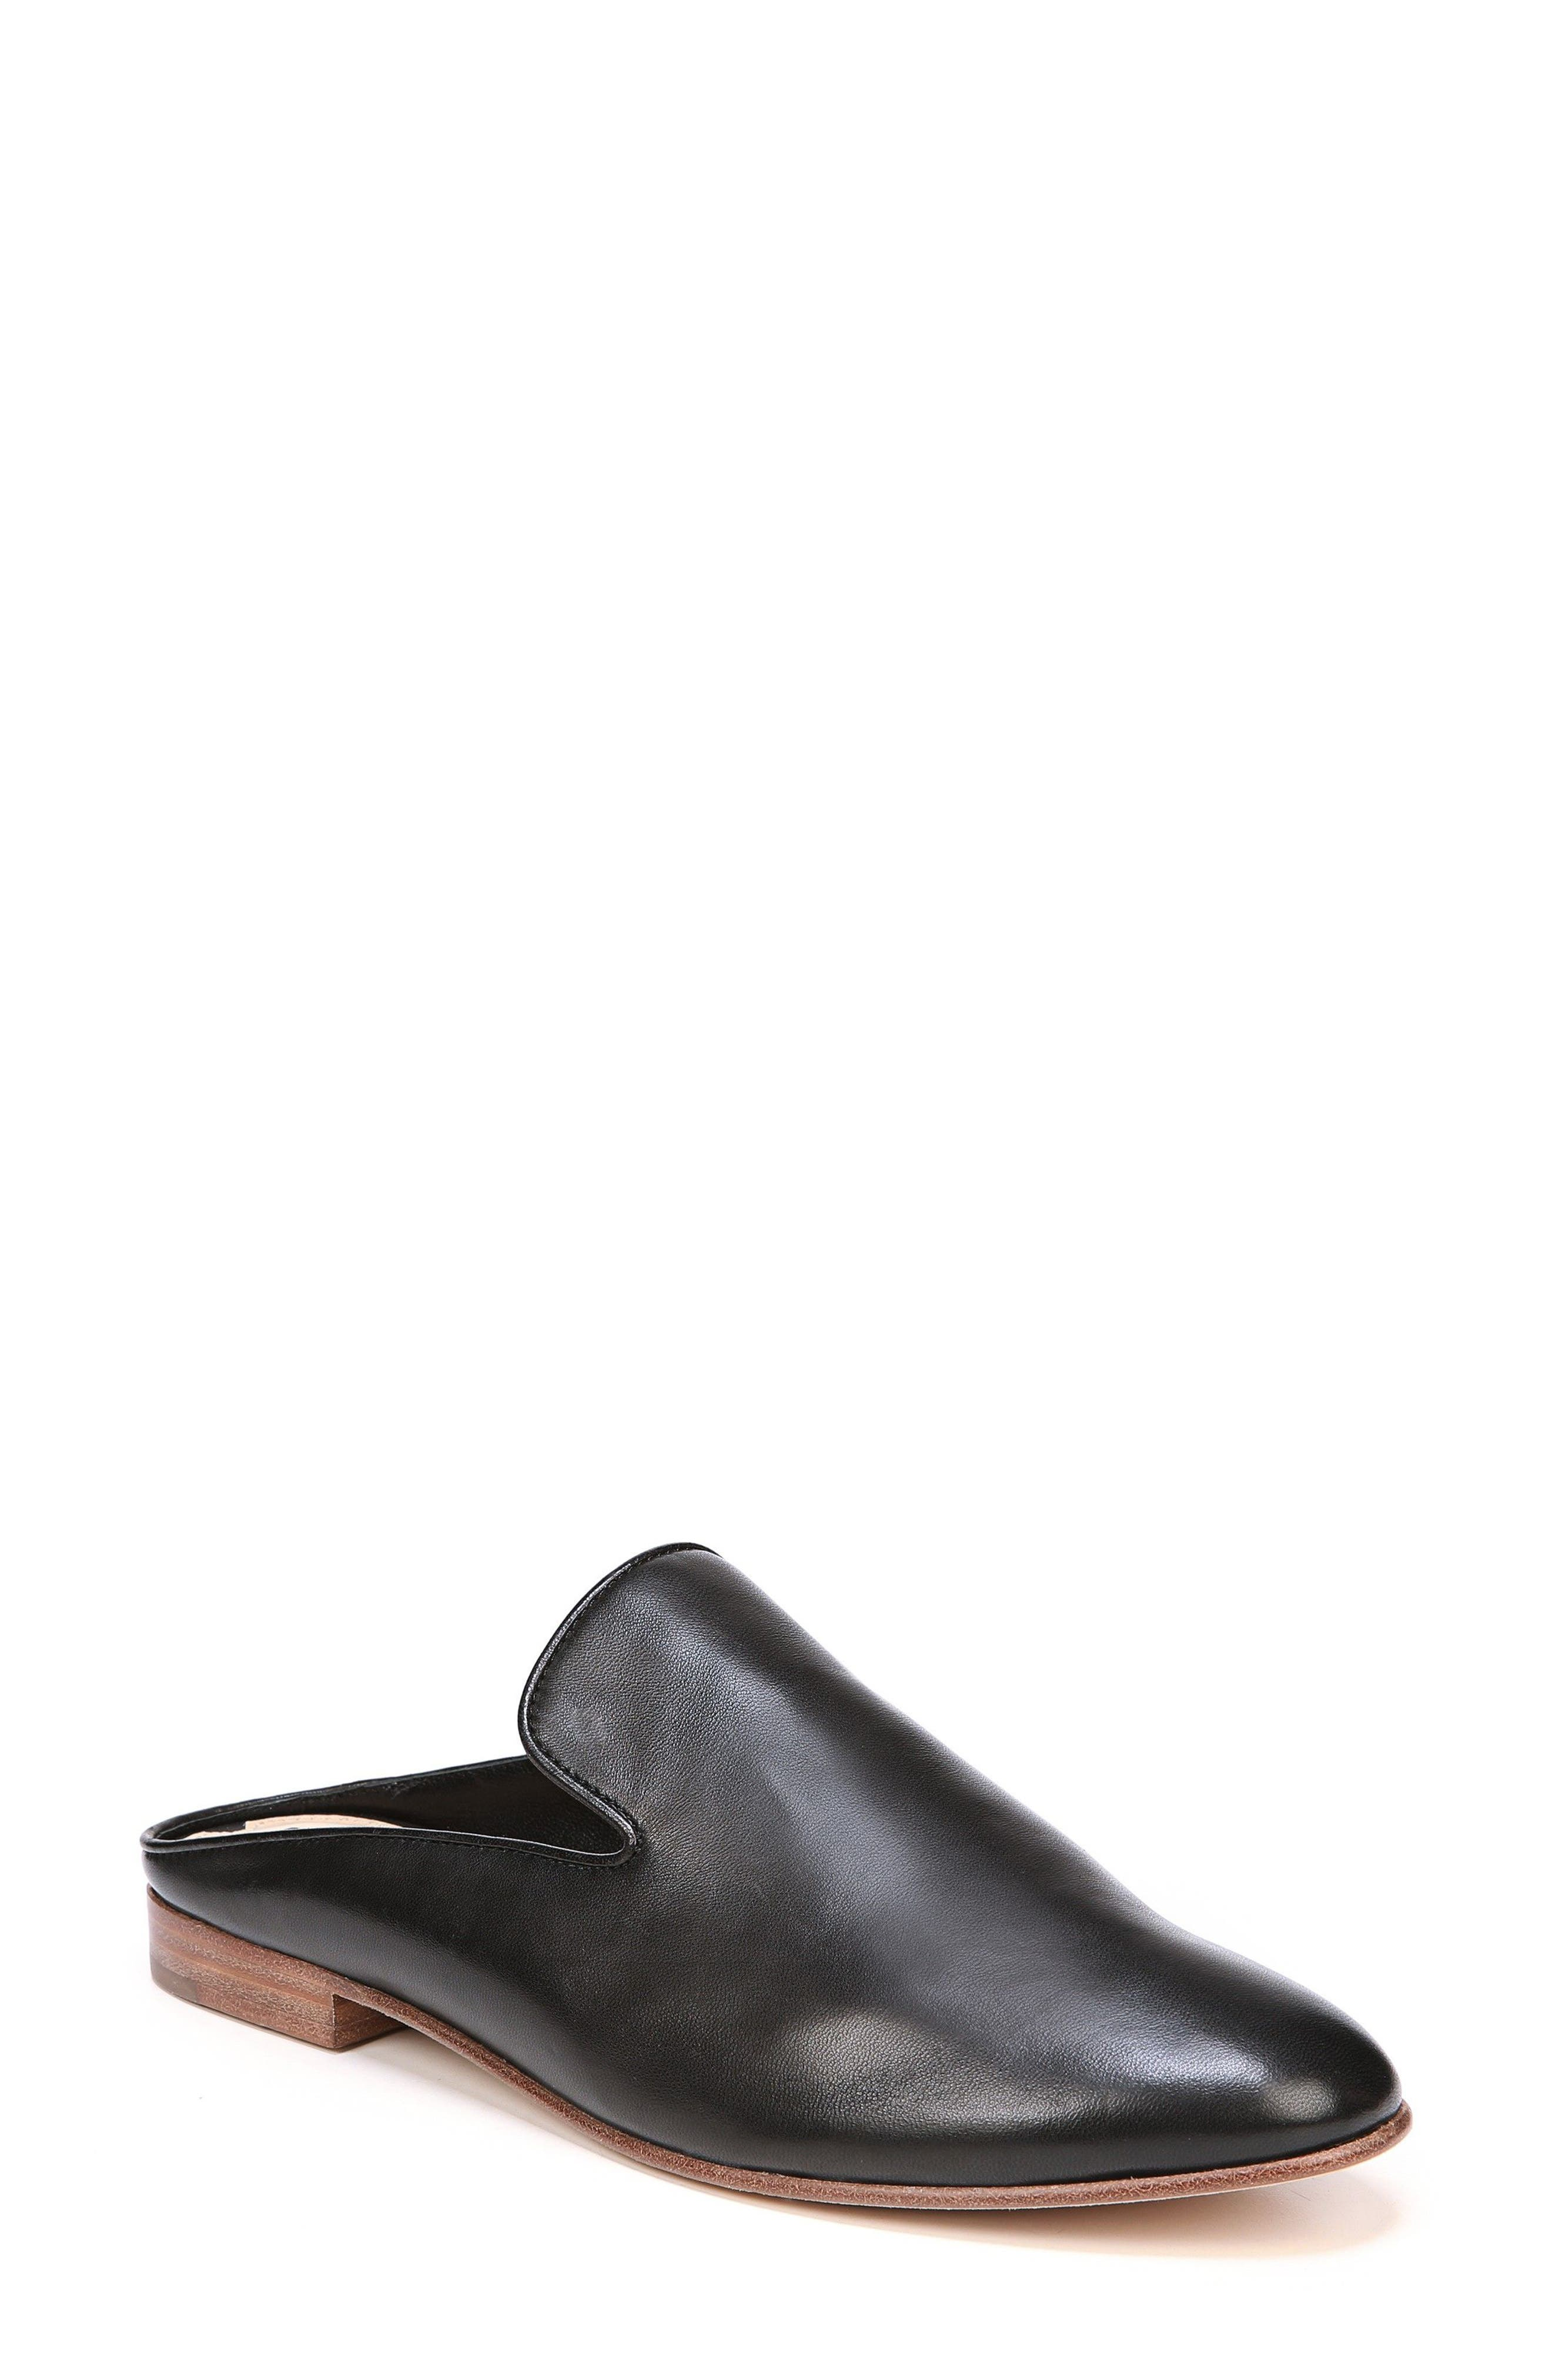 Yeo Loafer Mule,                             Main thumbnail 1, color,                             003